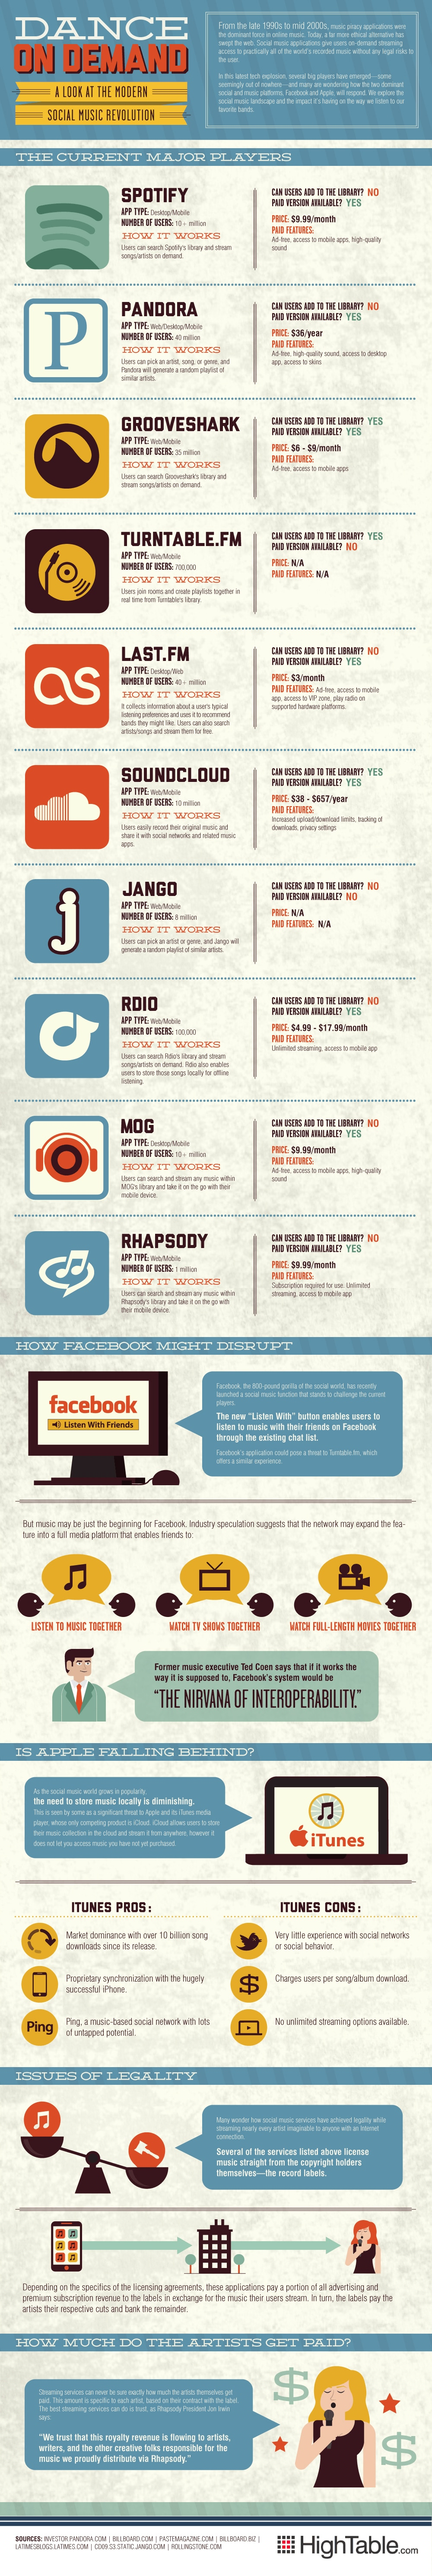 Music To Help You Dance On Demand, Legally [Infographic]